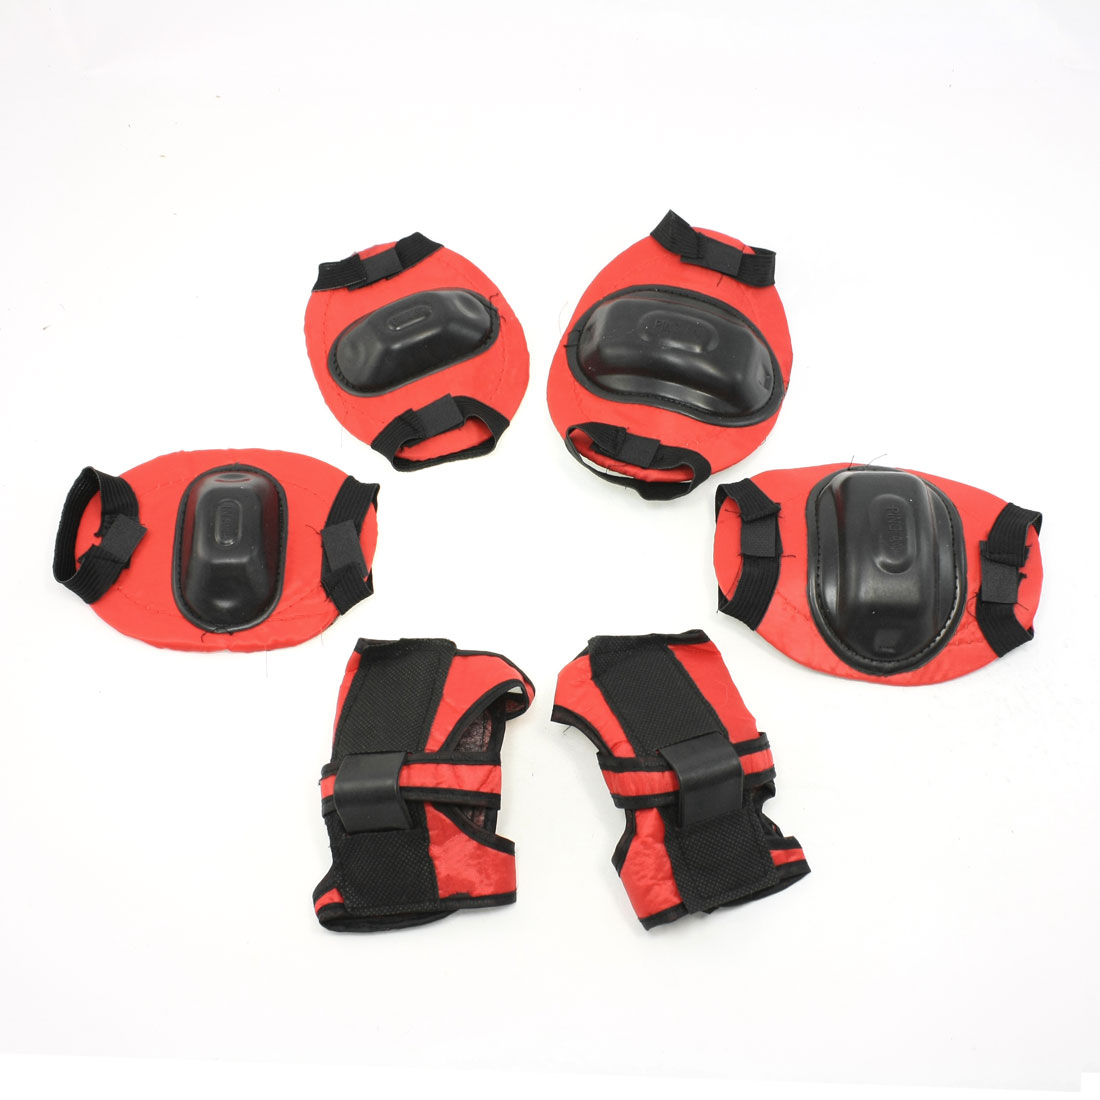 Multi Sports Protective Gear Wrist Support Guard Elbow Knee Pads Set For Children by Unique-Bargains